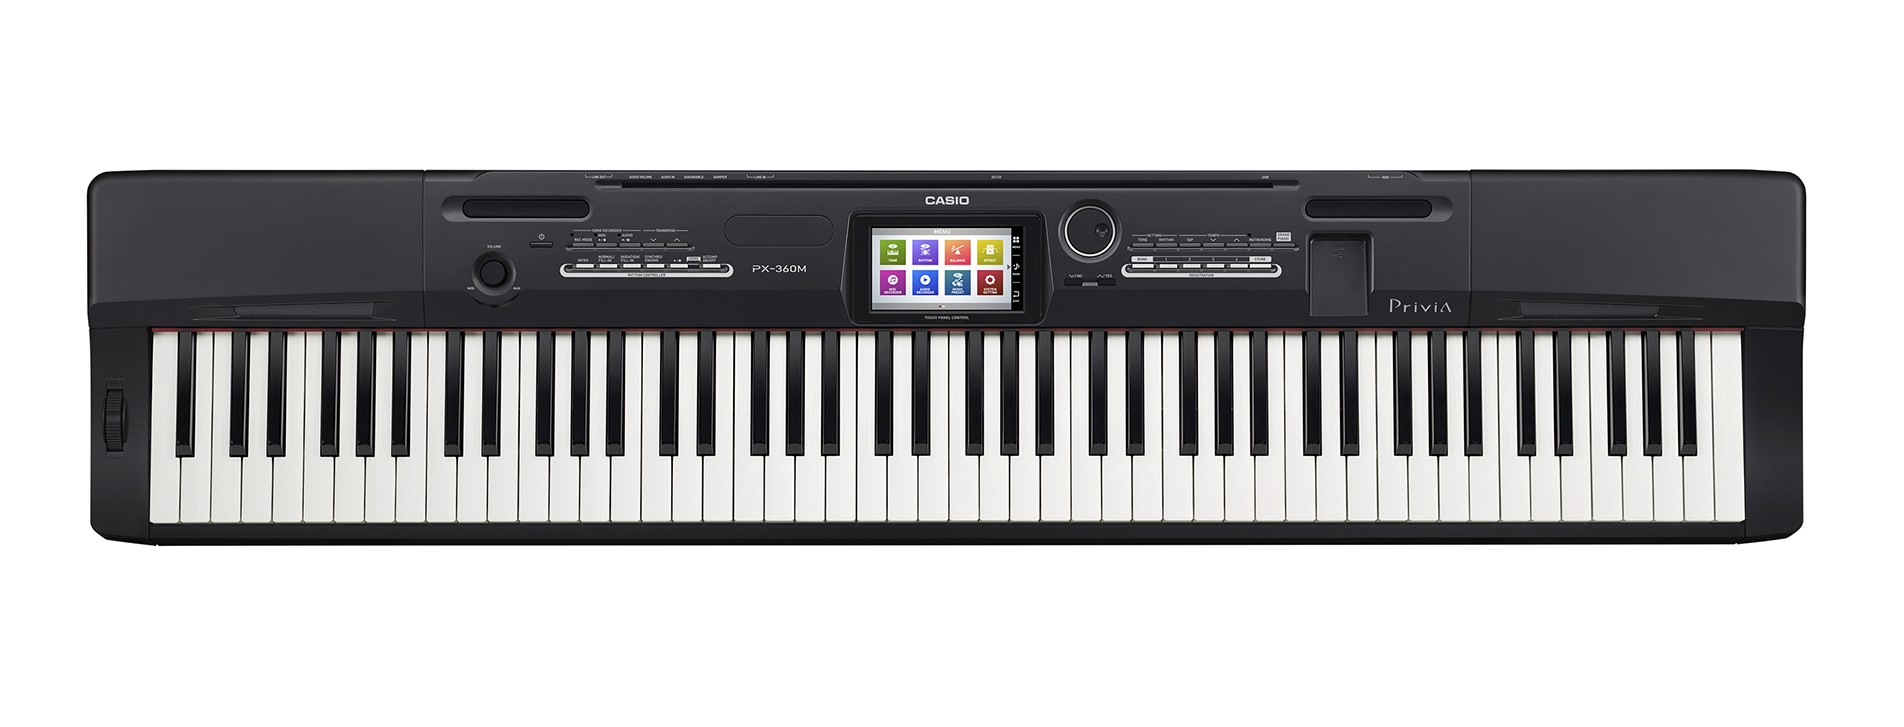 casio px360 privia series review best price digital piano best review. Black Bedroom Furniture Sets. Home Design Ideas